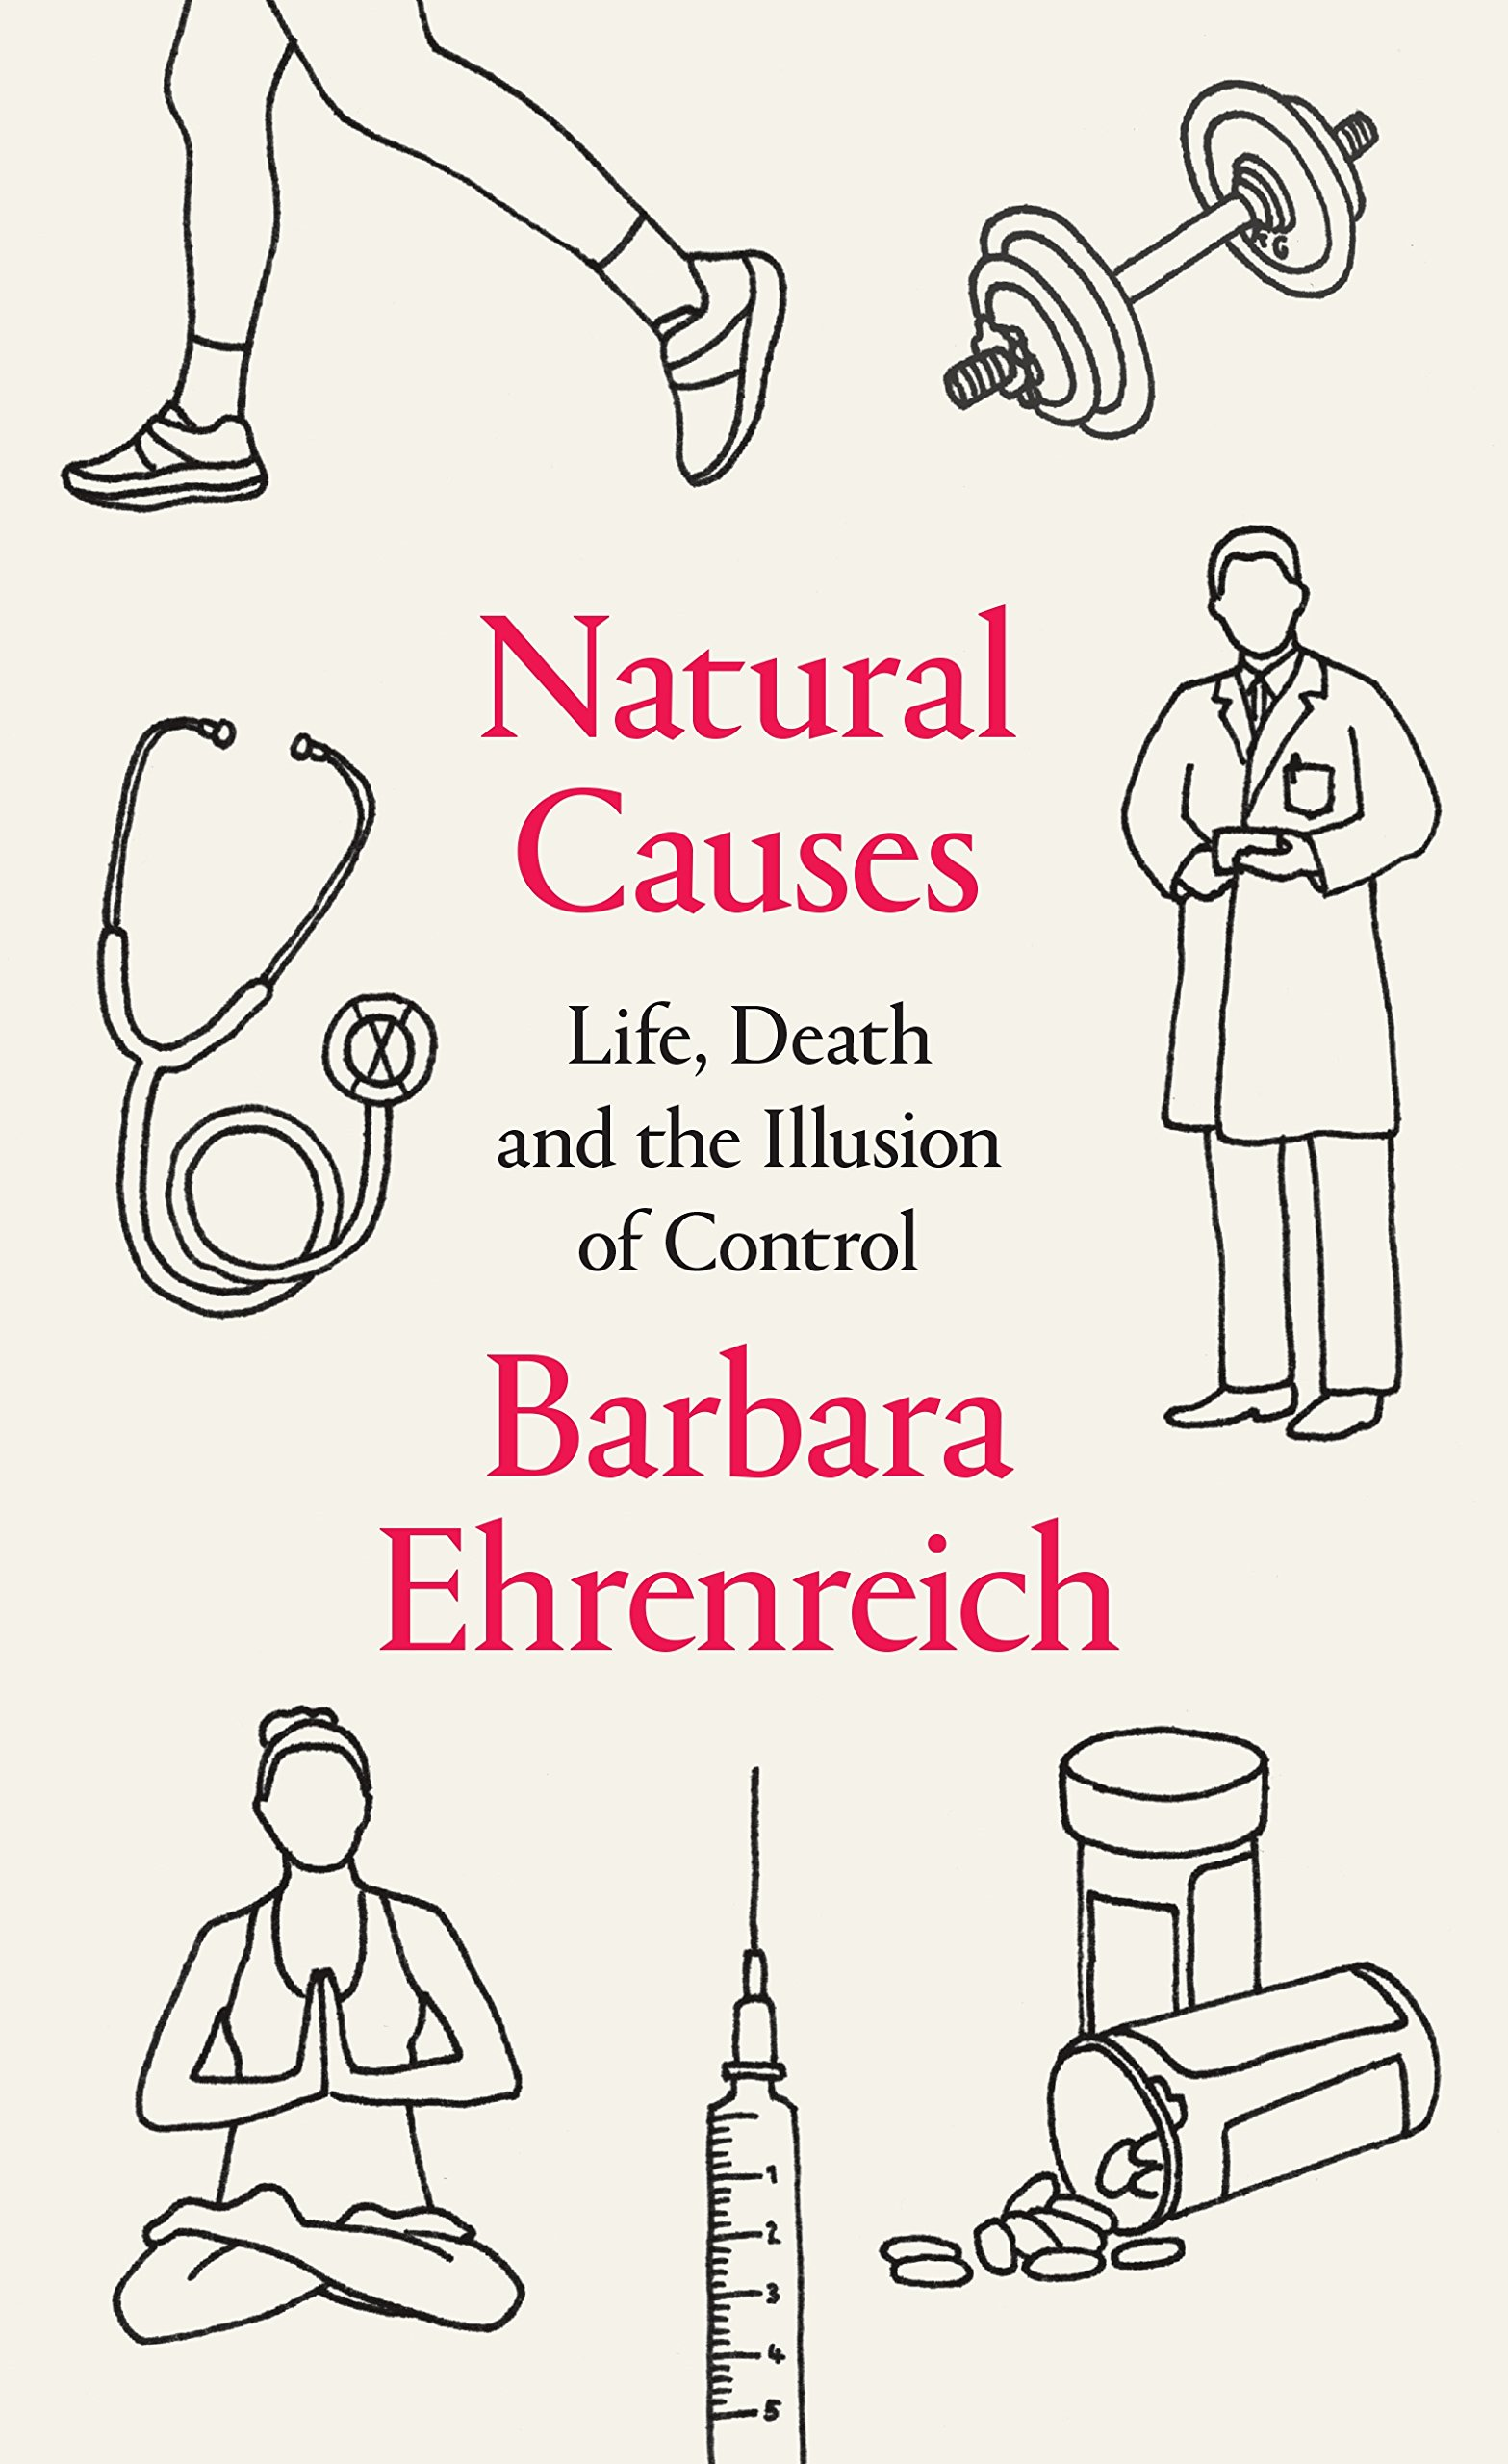 Barbara Ehrenreich: Natural Causes